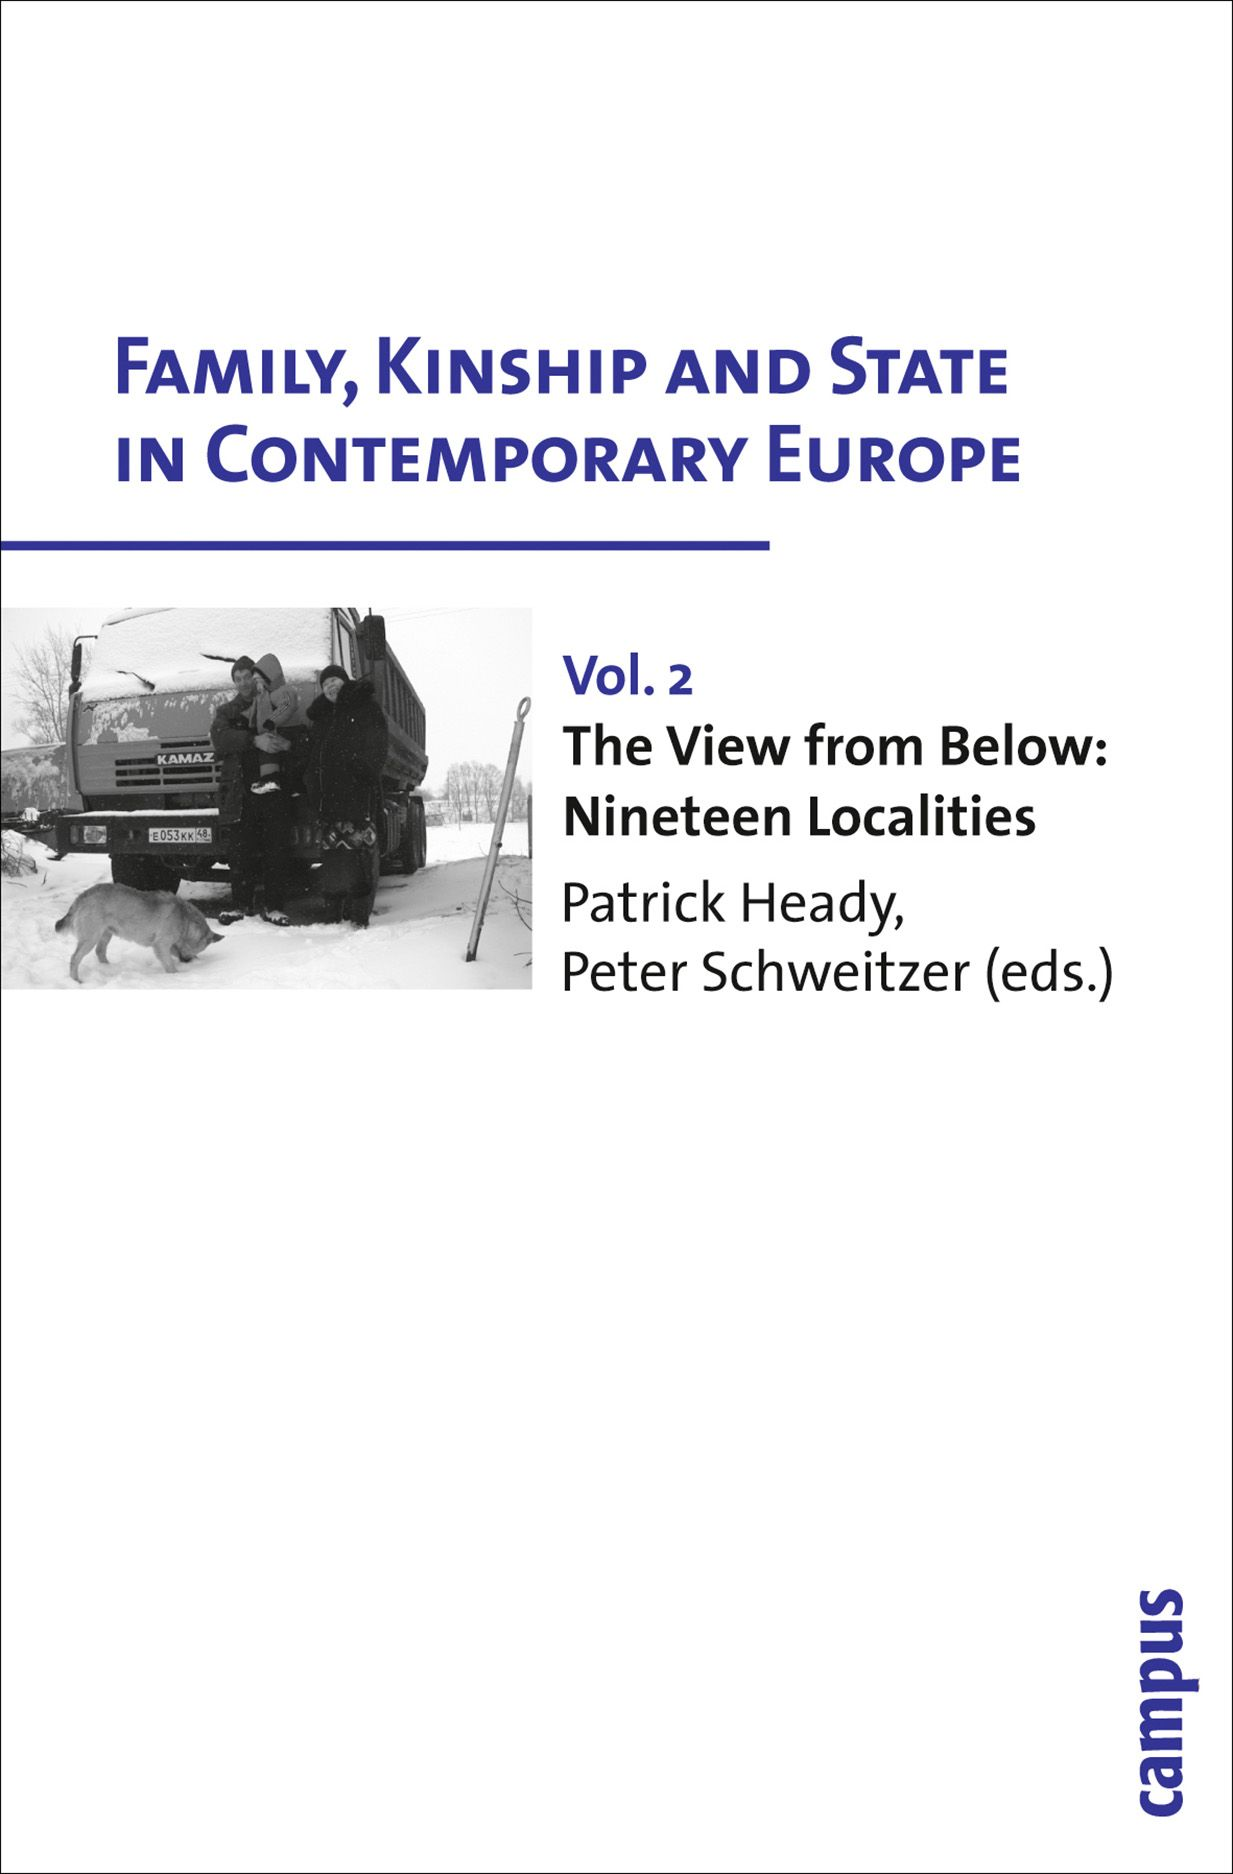 Family, Kinship and State in Contemporary Europe, Vol. 2